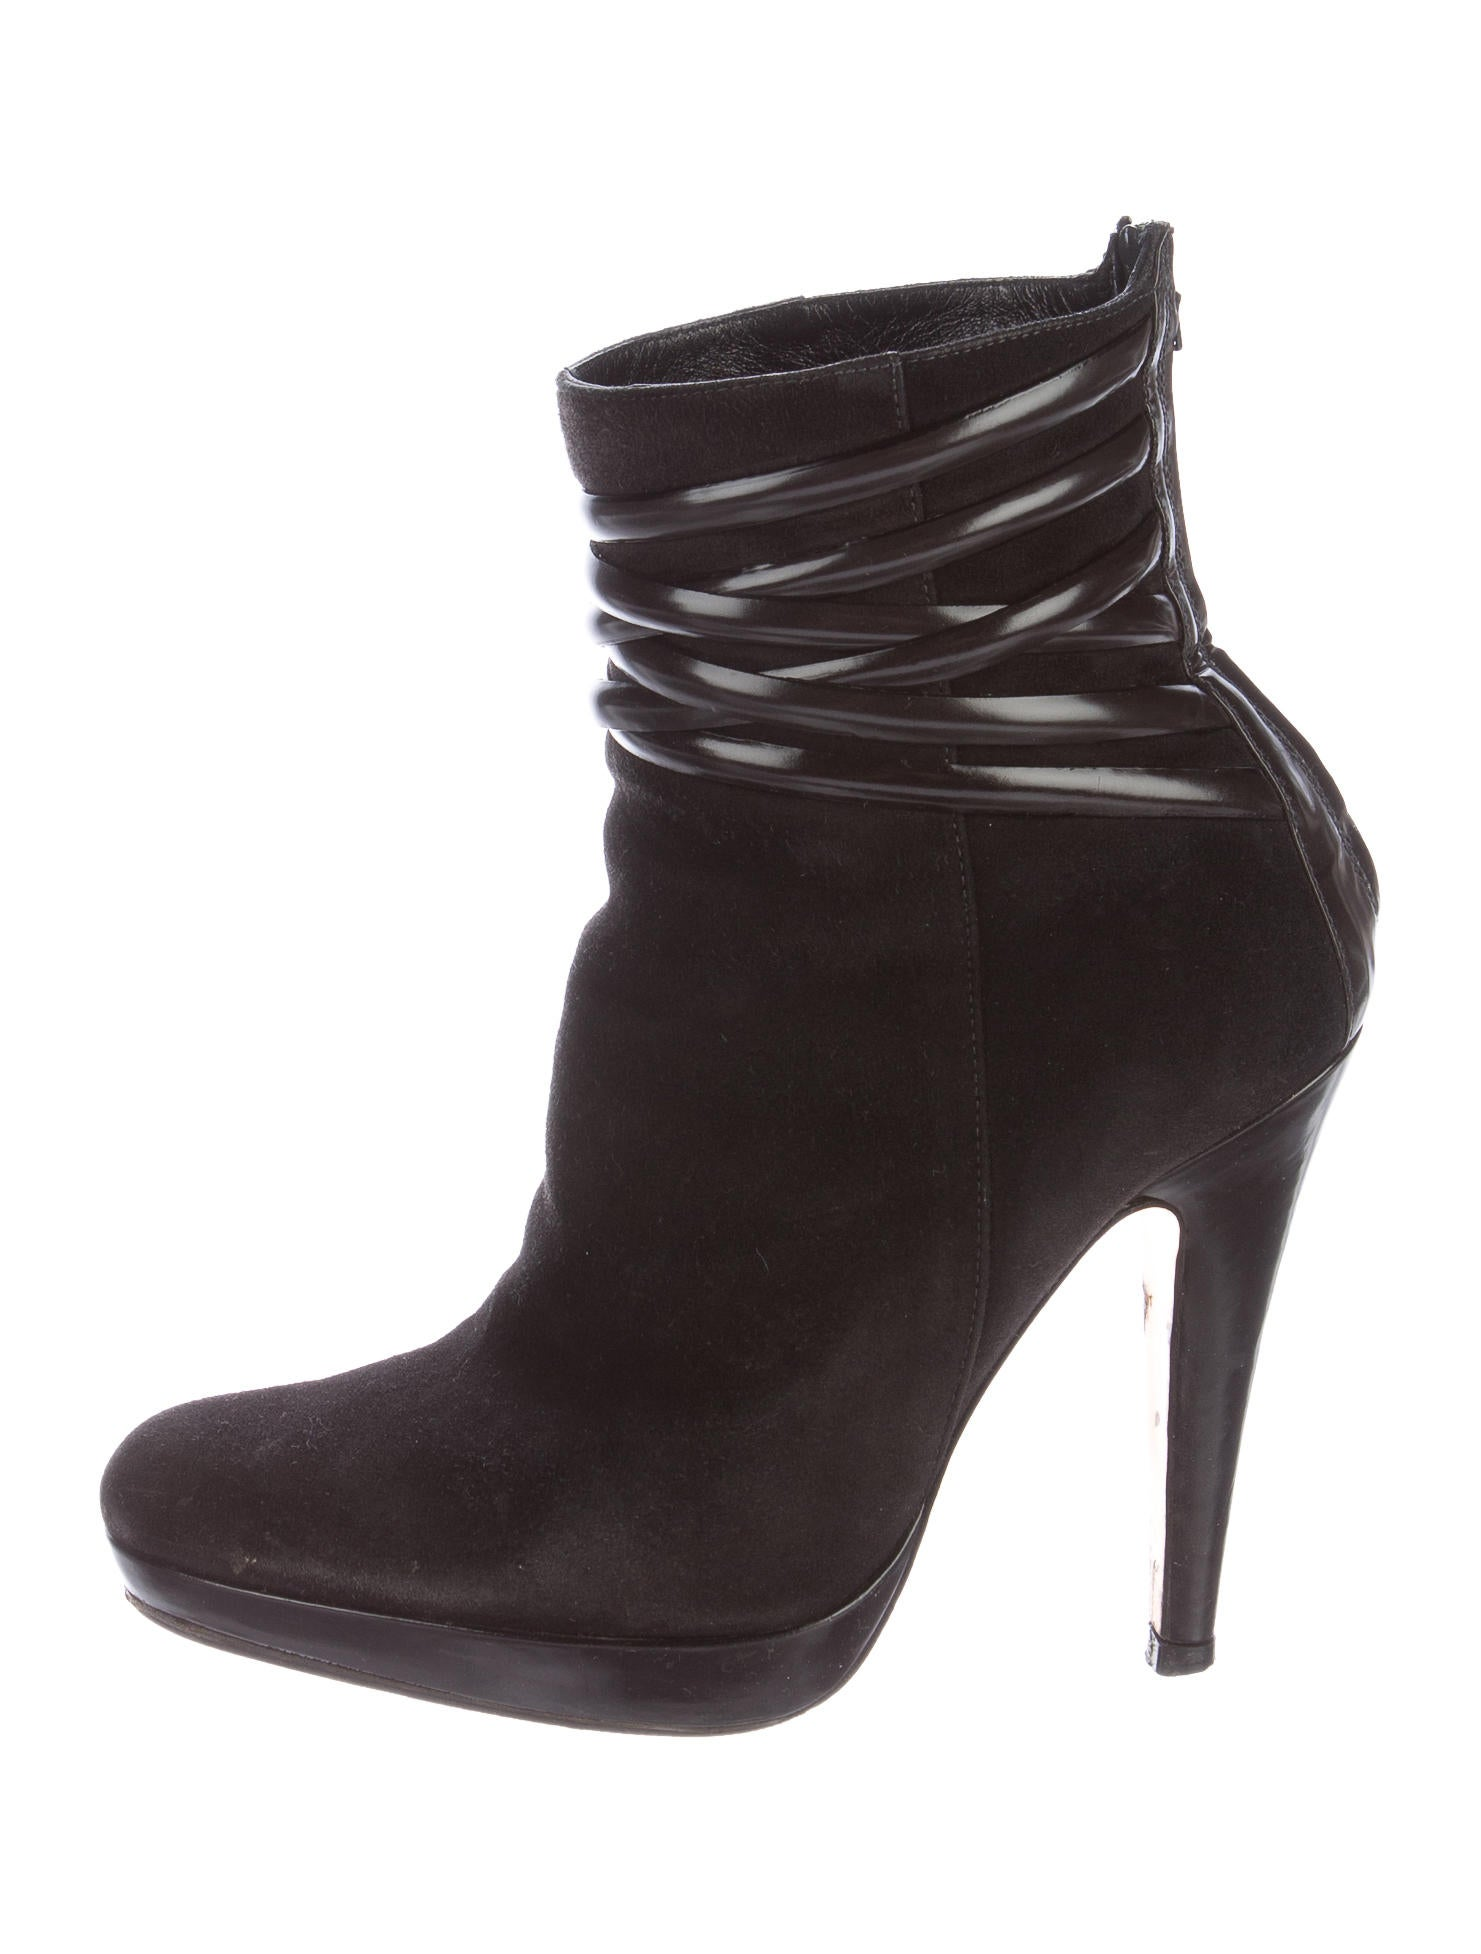 Barbara Bui Stefania Suede Ankle Boots cheap sale browse puby36X0